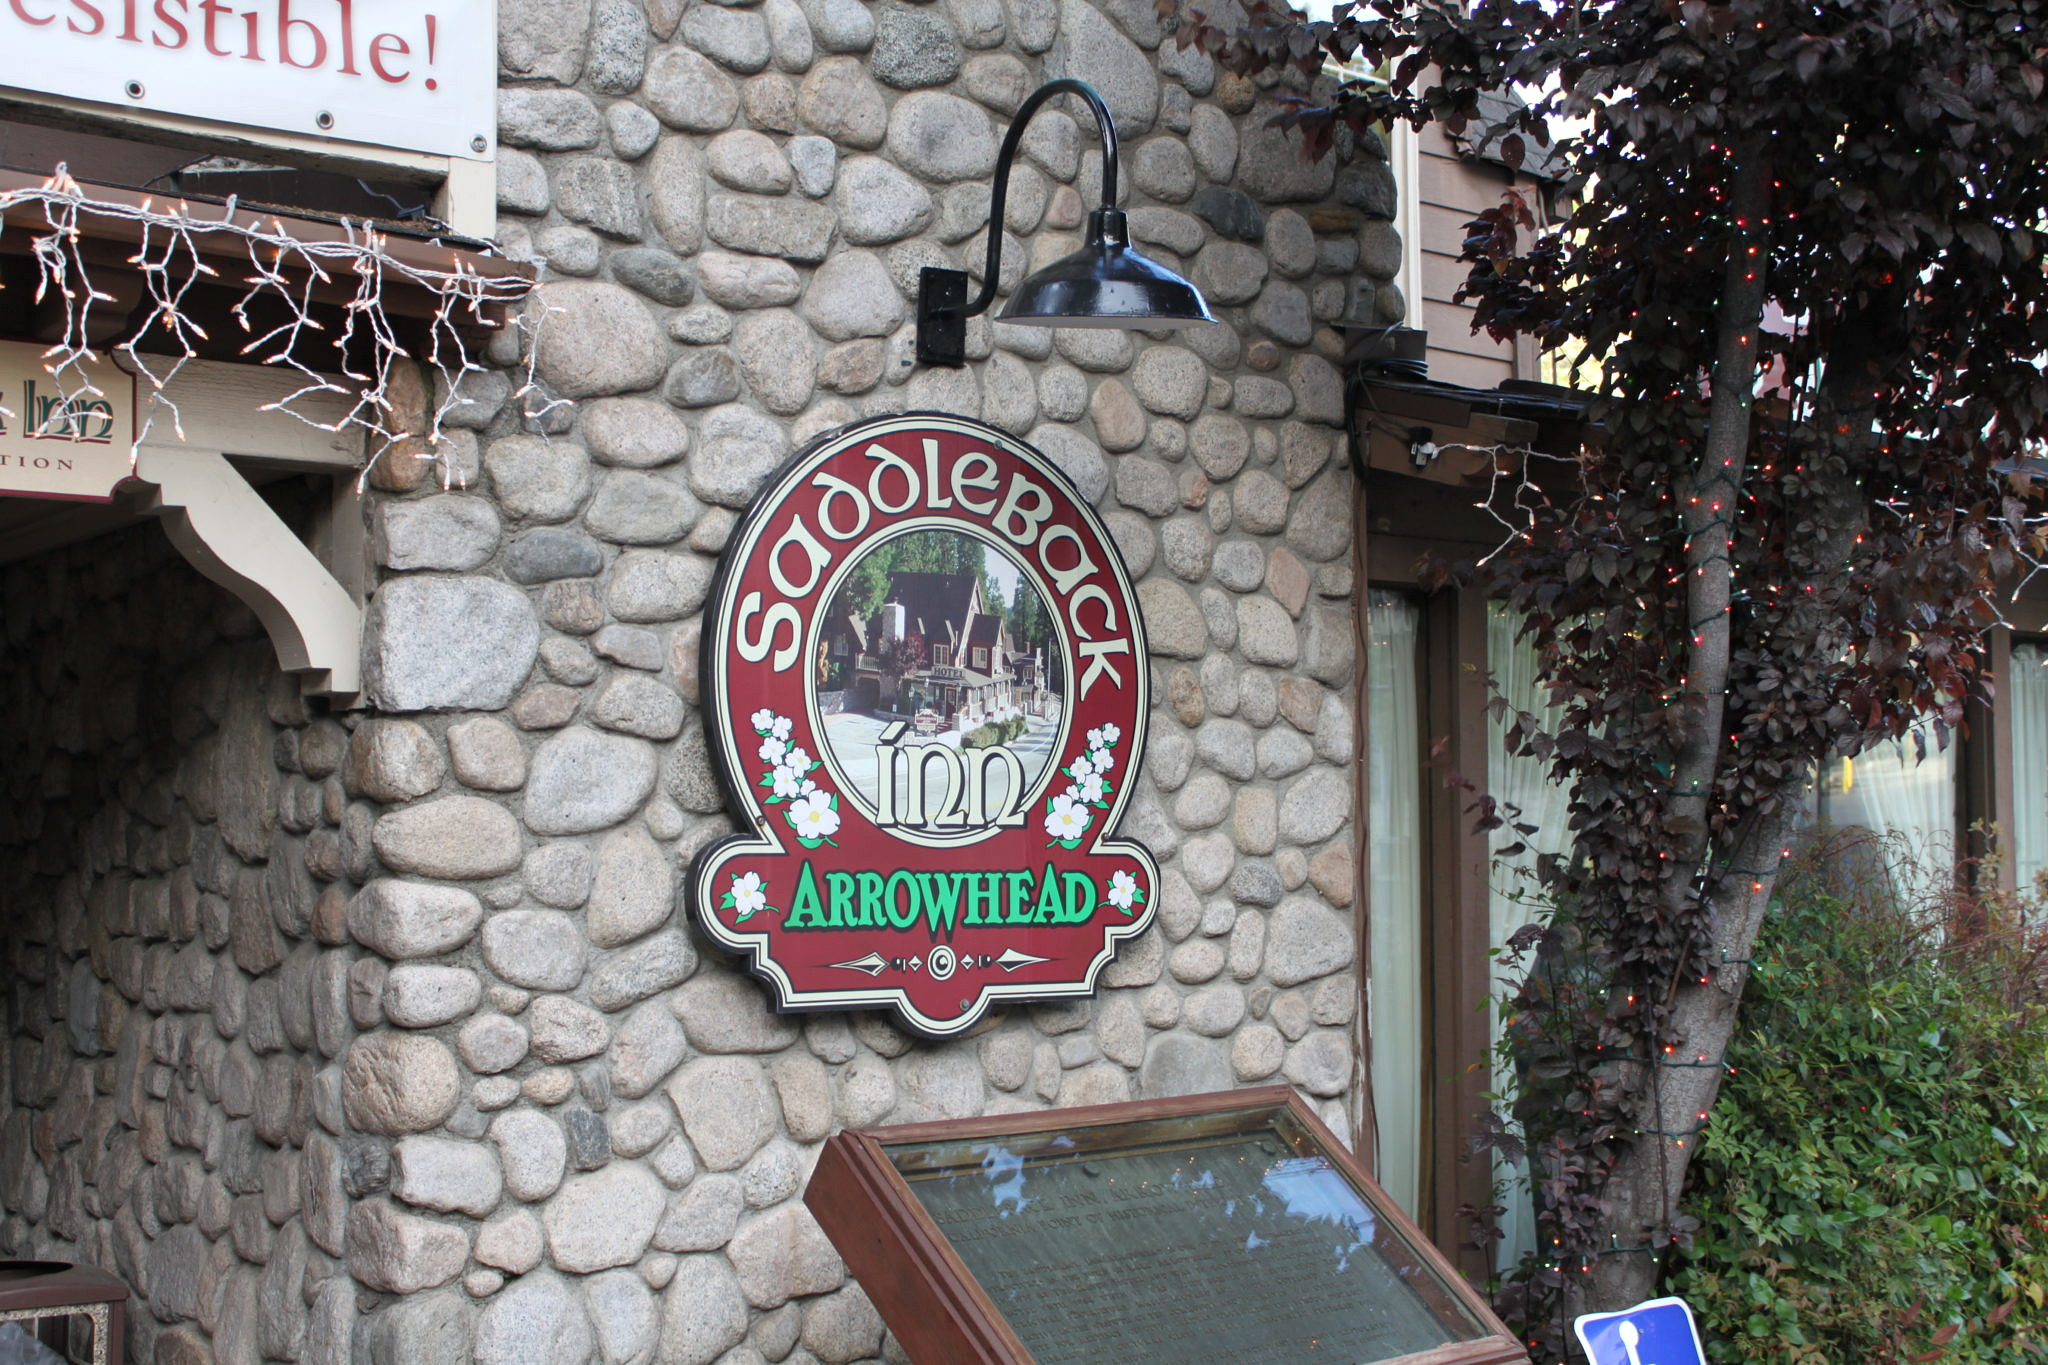 debbie-savage-lake-arrowhead-saddleback-inn-12